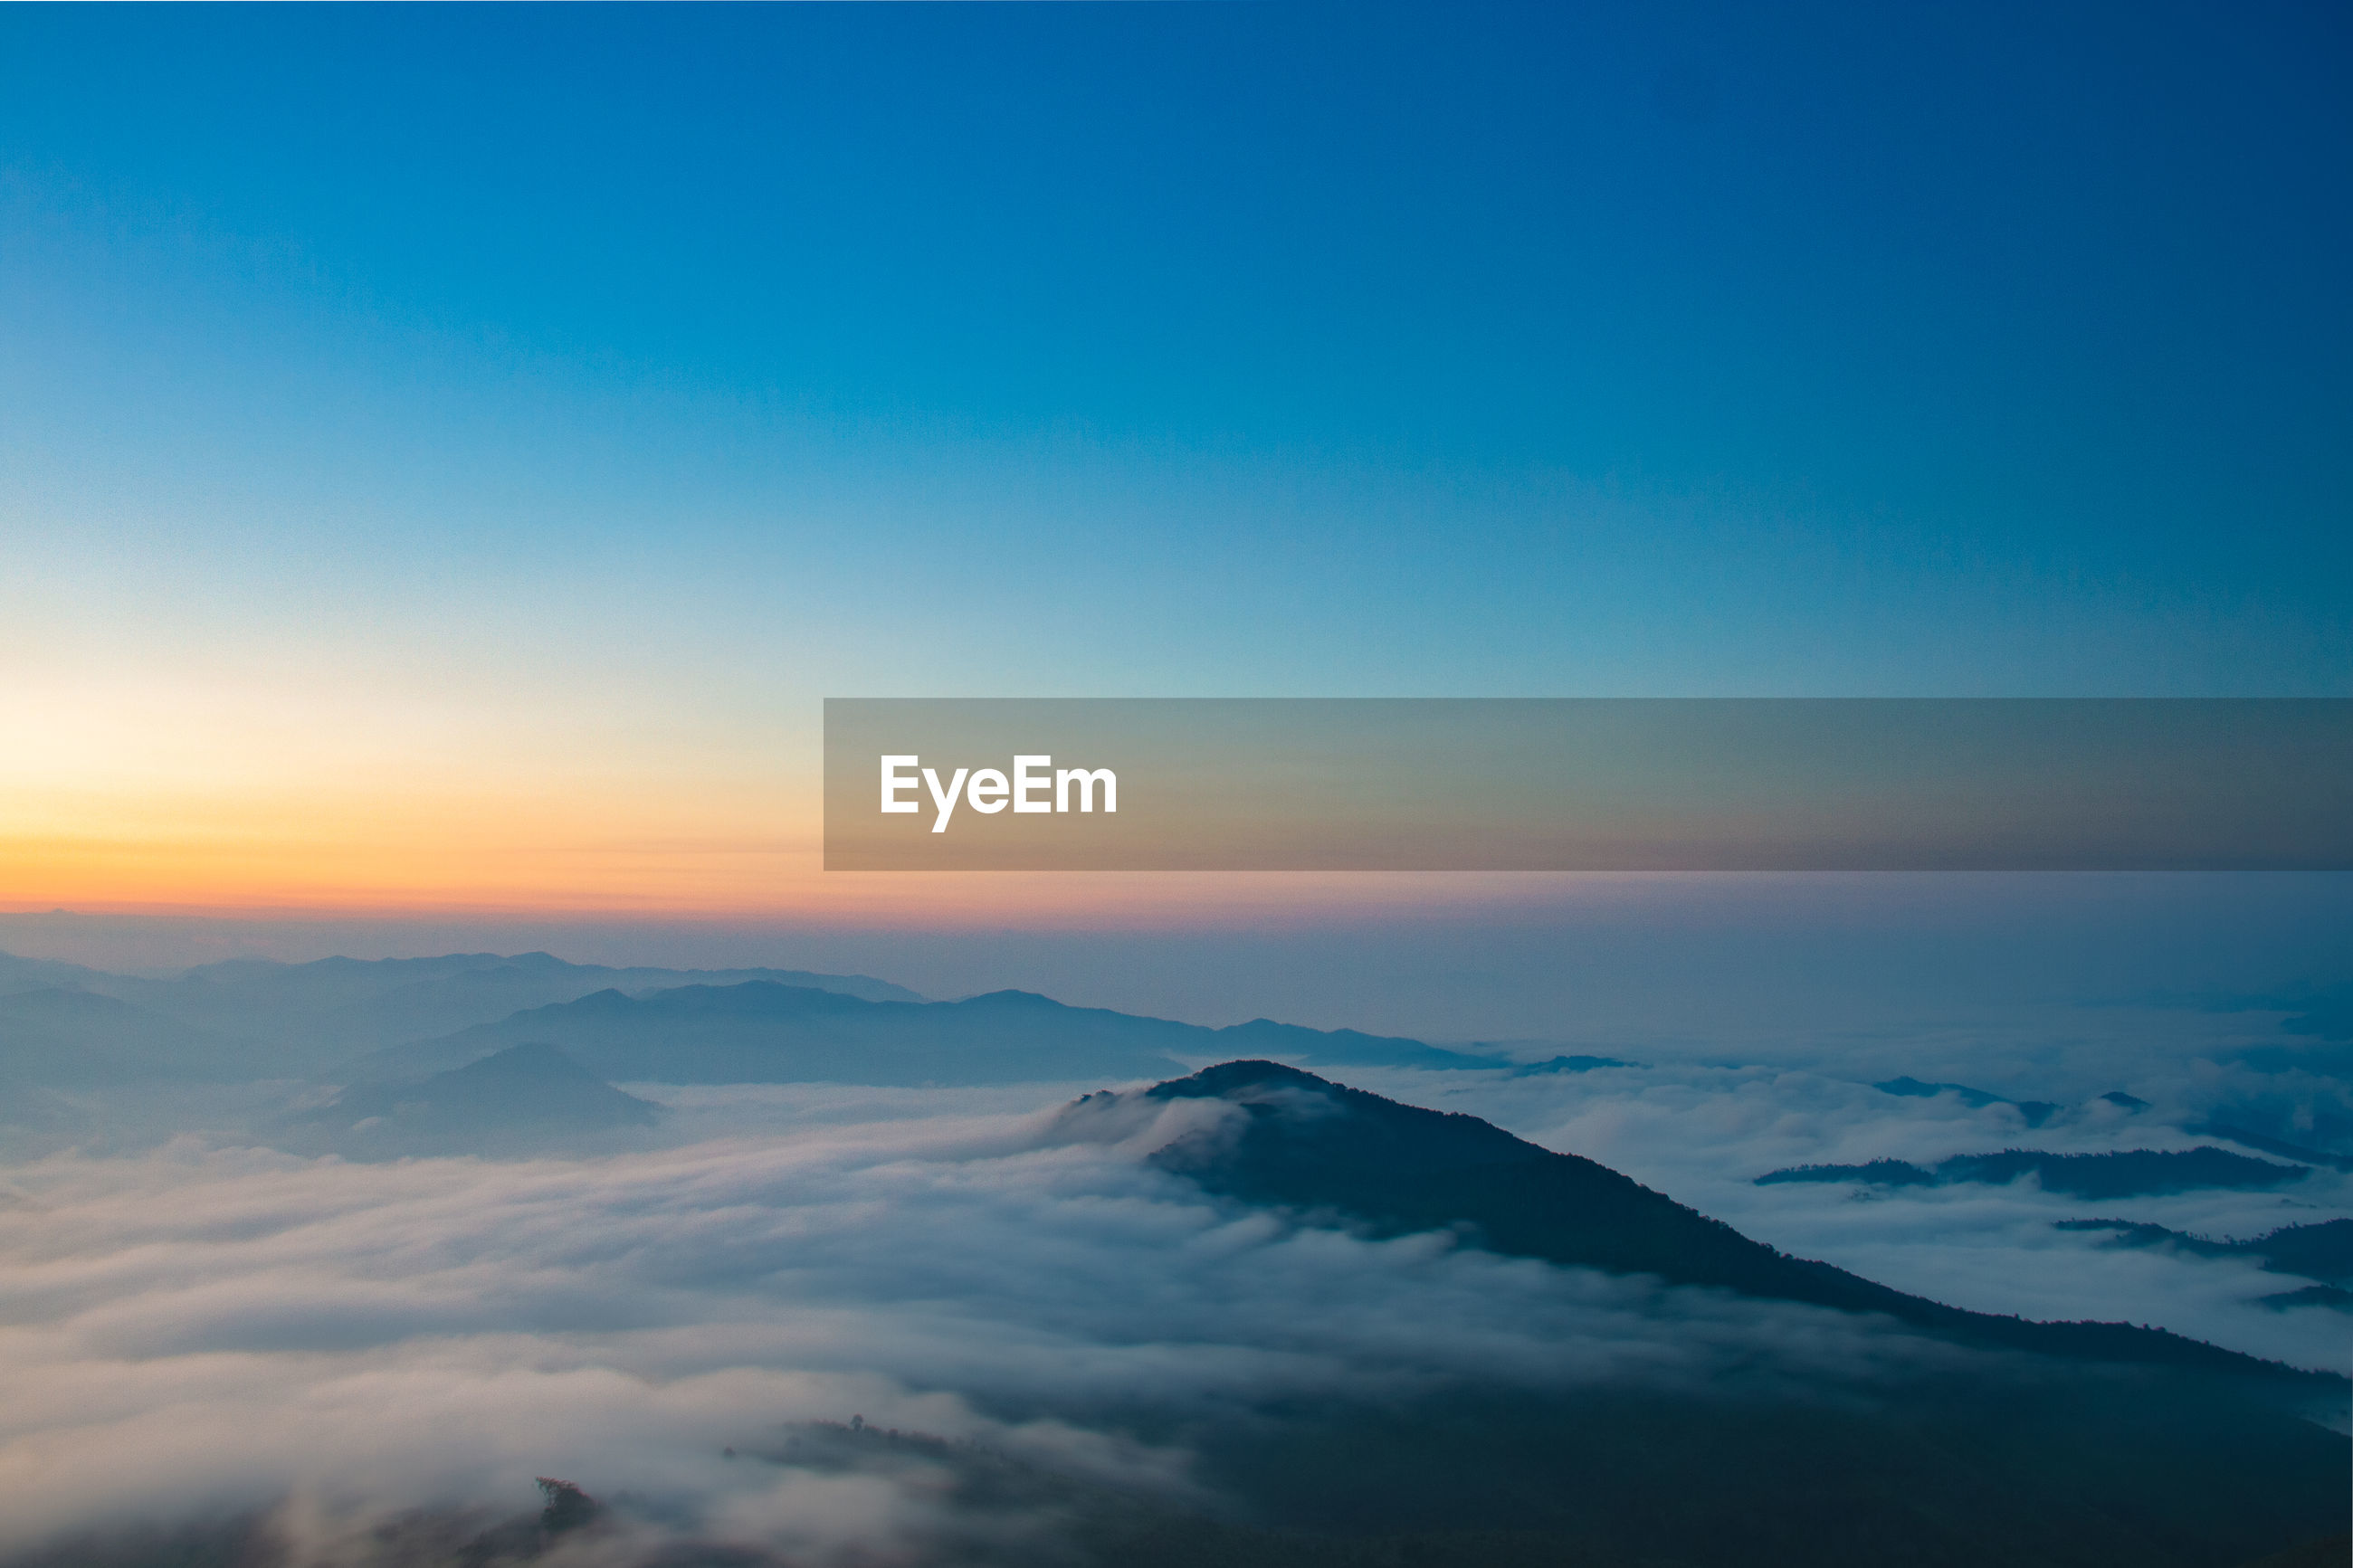 SCENIC VIEW OF MAJESTIC SNOWCAPPED MOUNTAINS AGAINST SKY DURING SUNSET